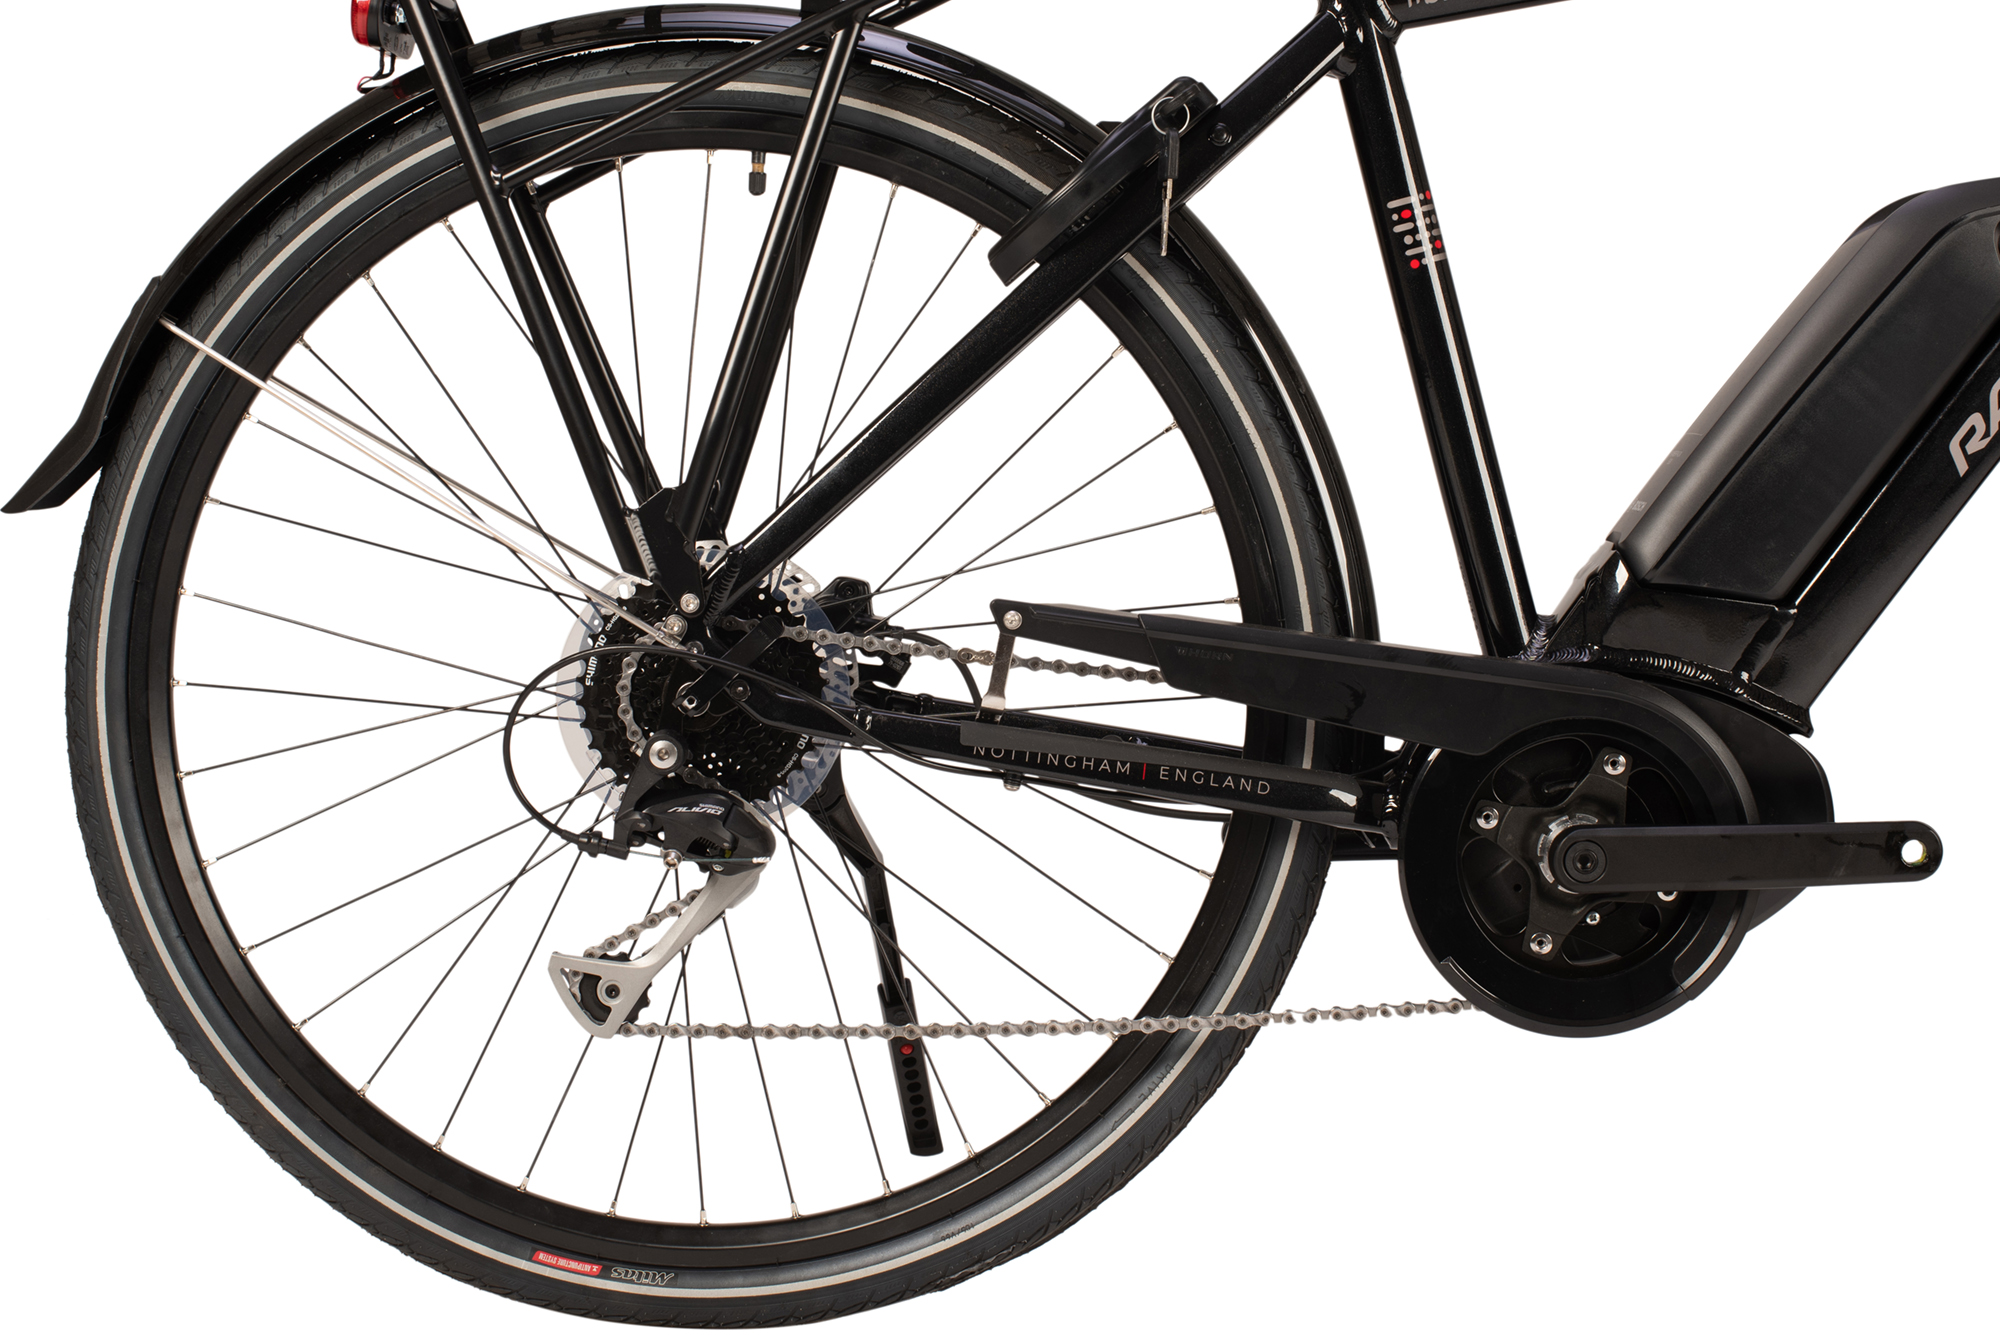 Drivetrain abd rear wheel on the Raleigh Motus Grand Tour electric bike